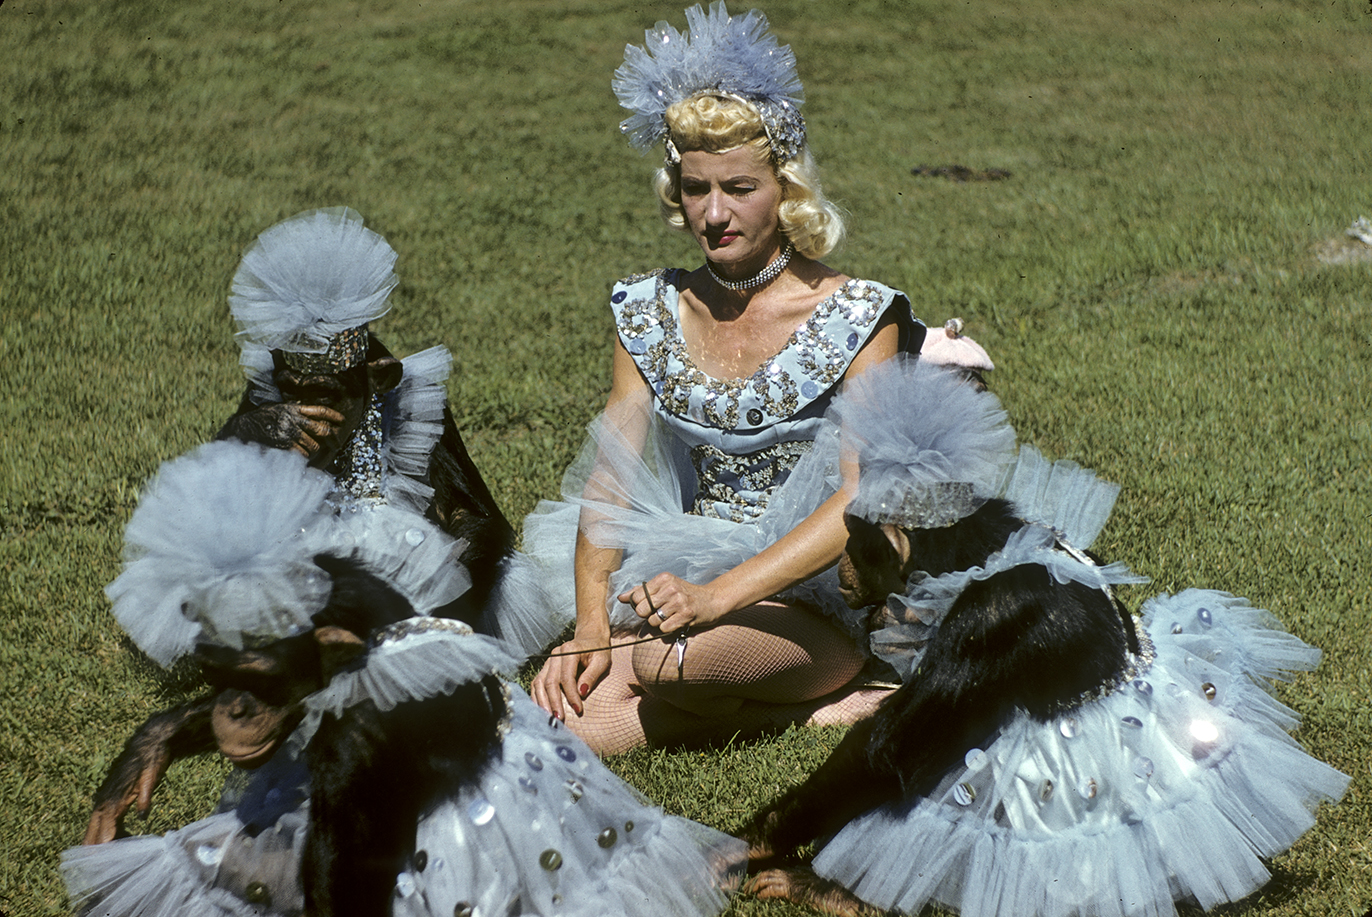 Woman and chimpanzees are sitting on grass, all are wearing light blue and silver outfits with tutus and headpieces.